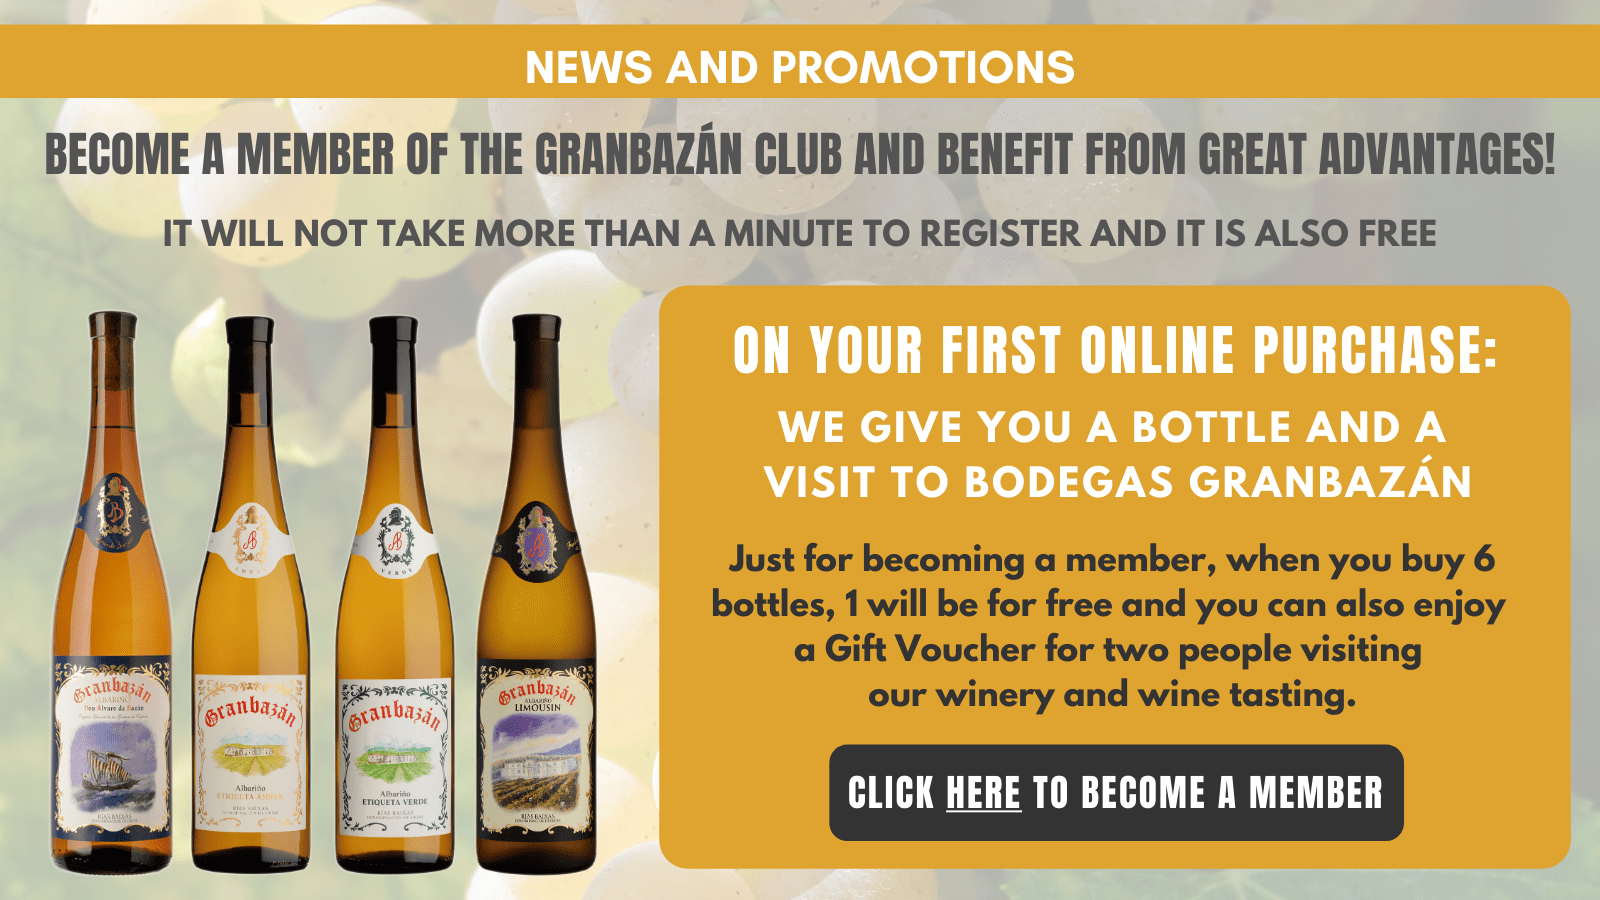 Club Granbazan Advantages